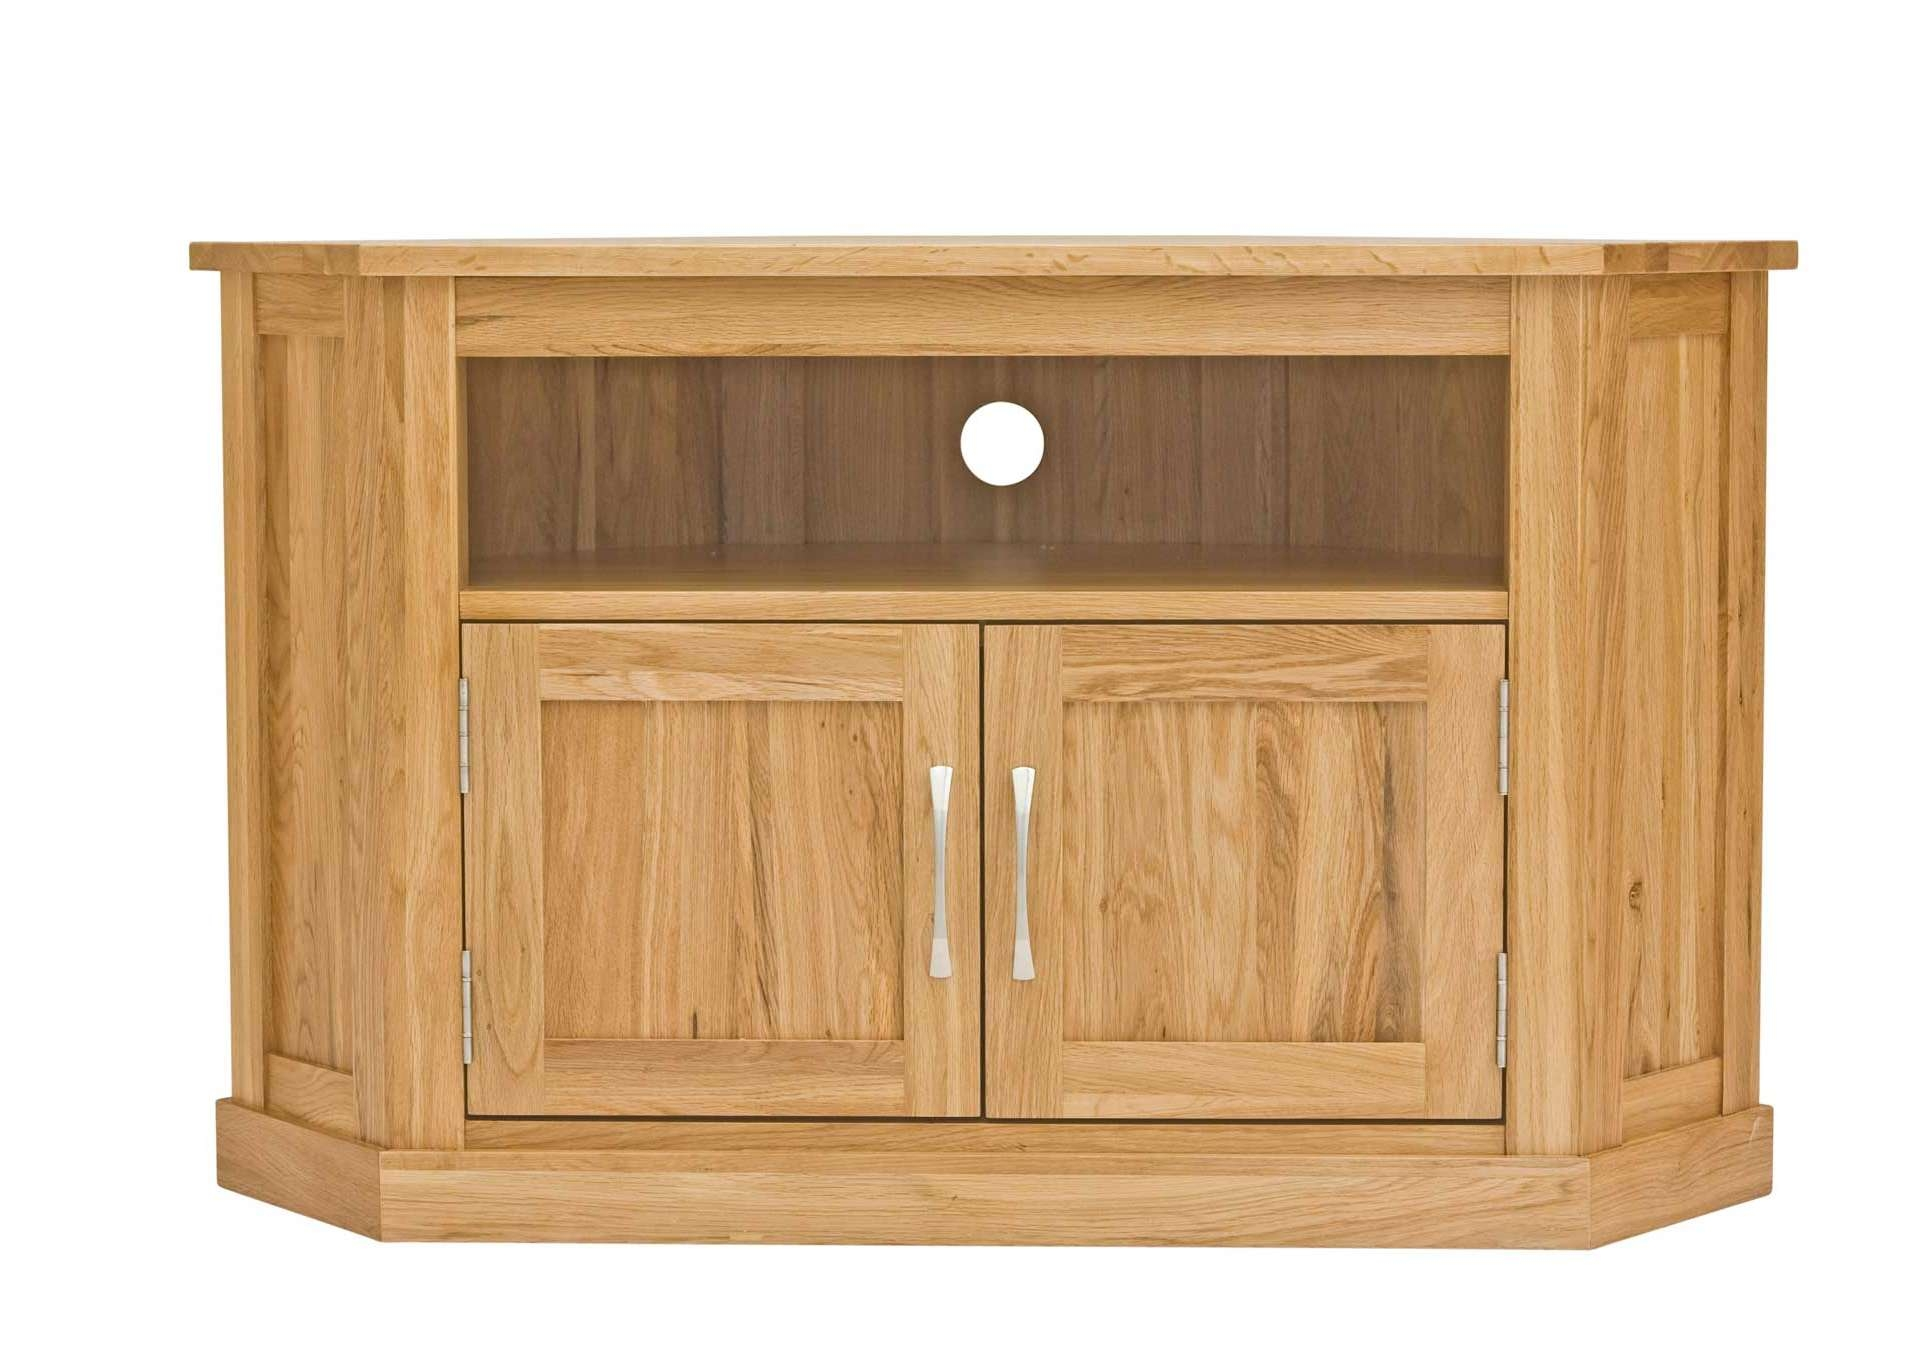 Classic Oak Corner Television Cabinet | Hampshire Furniture Throughout Small Oak Corner Tv Stands (View 3 of 15)